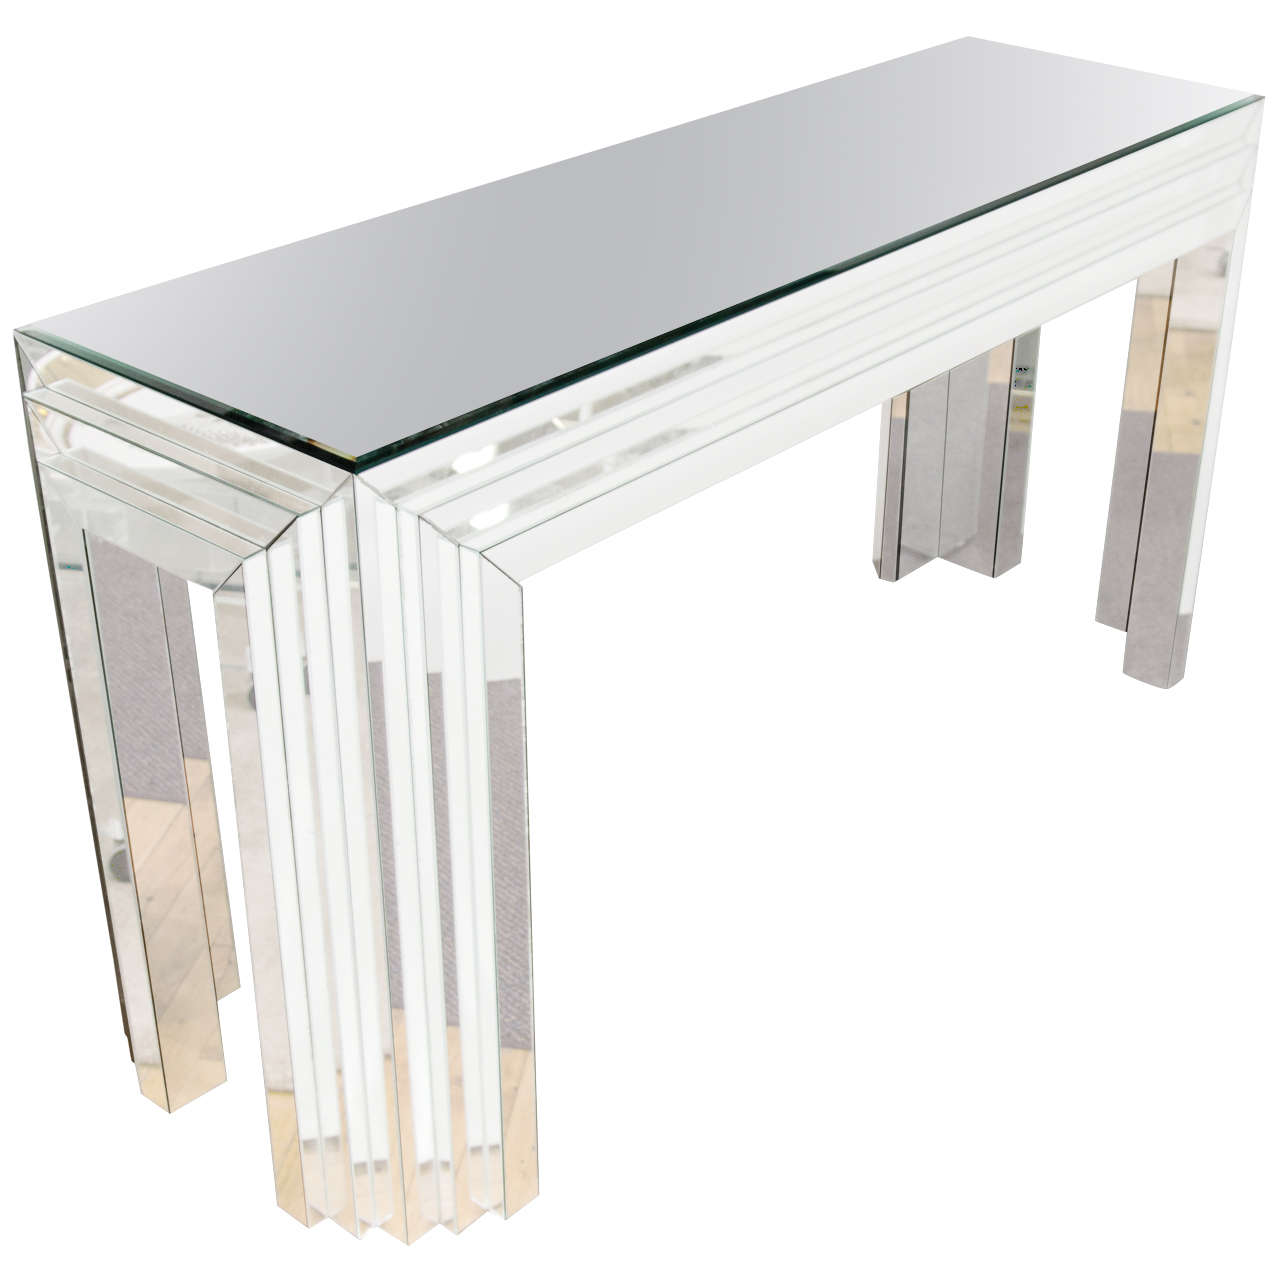 Glass console table with mirror - Midcentury Mirrored Glass Console Table With Mirrored Surface In